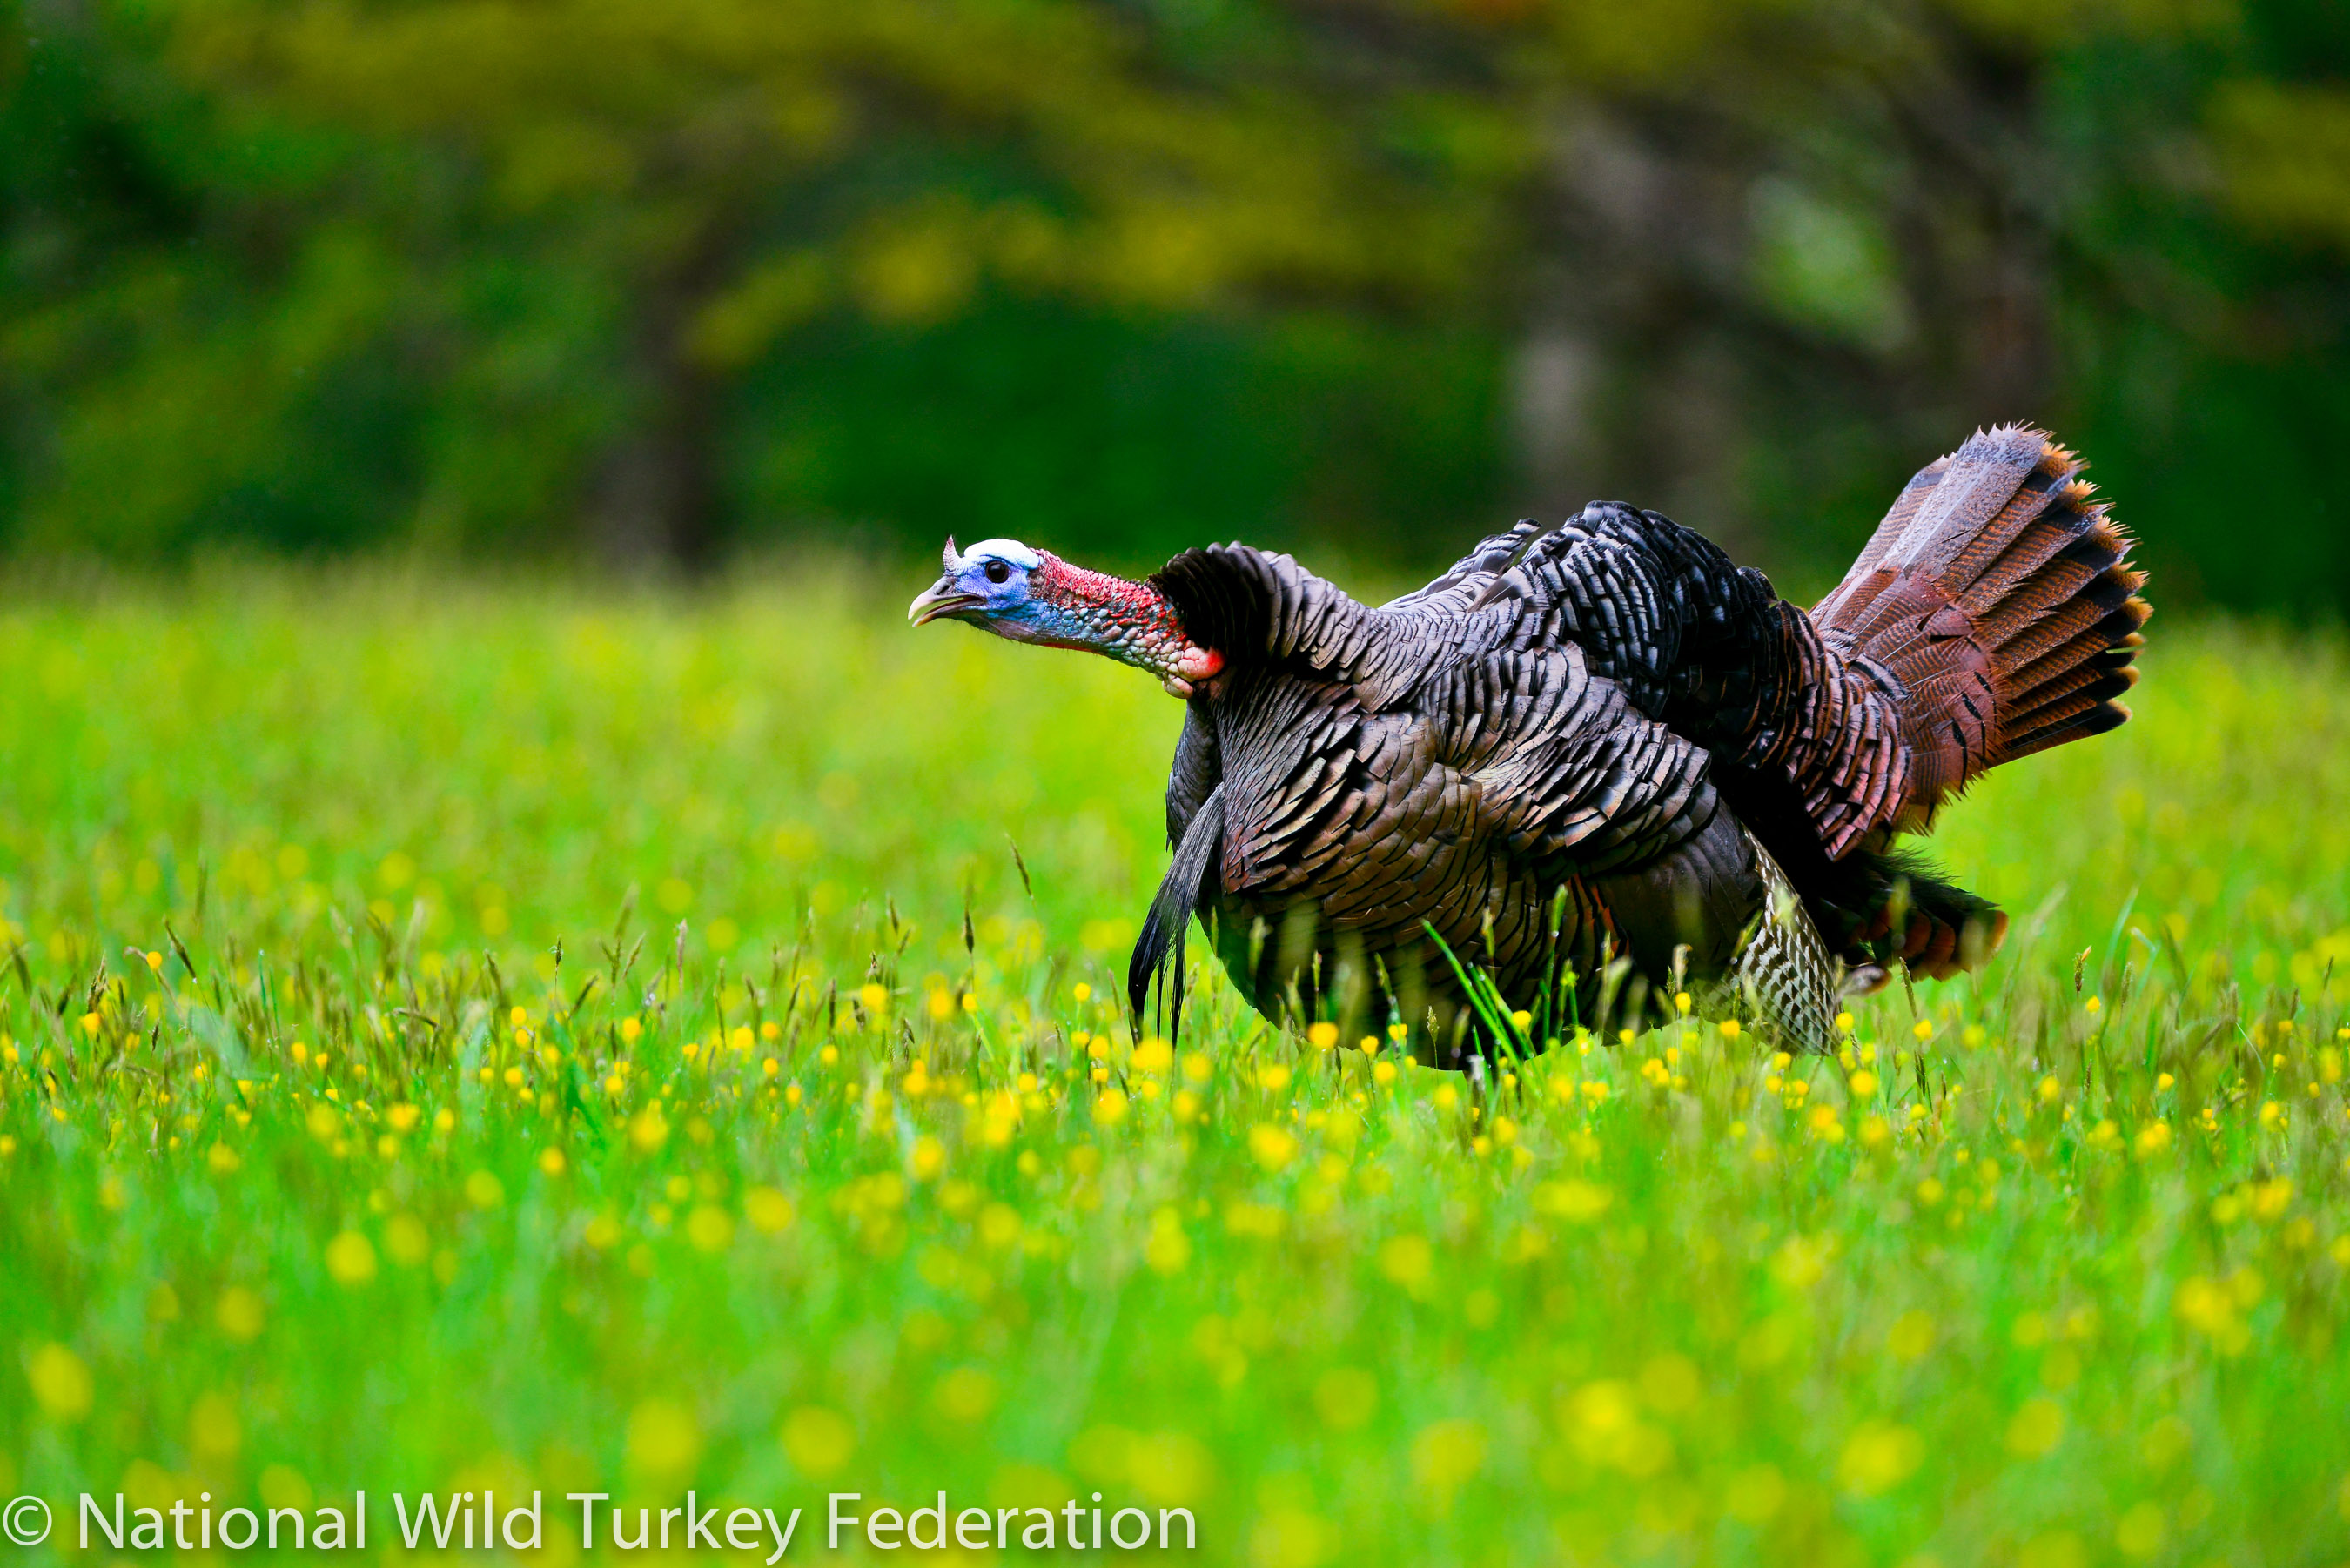 South Carolina passes new turkey regulations to bolster declining populations